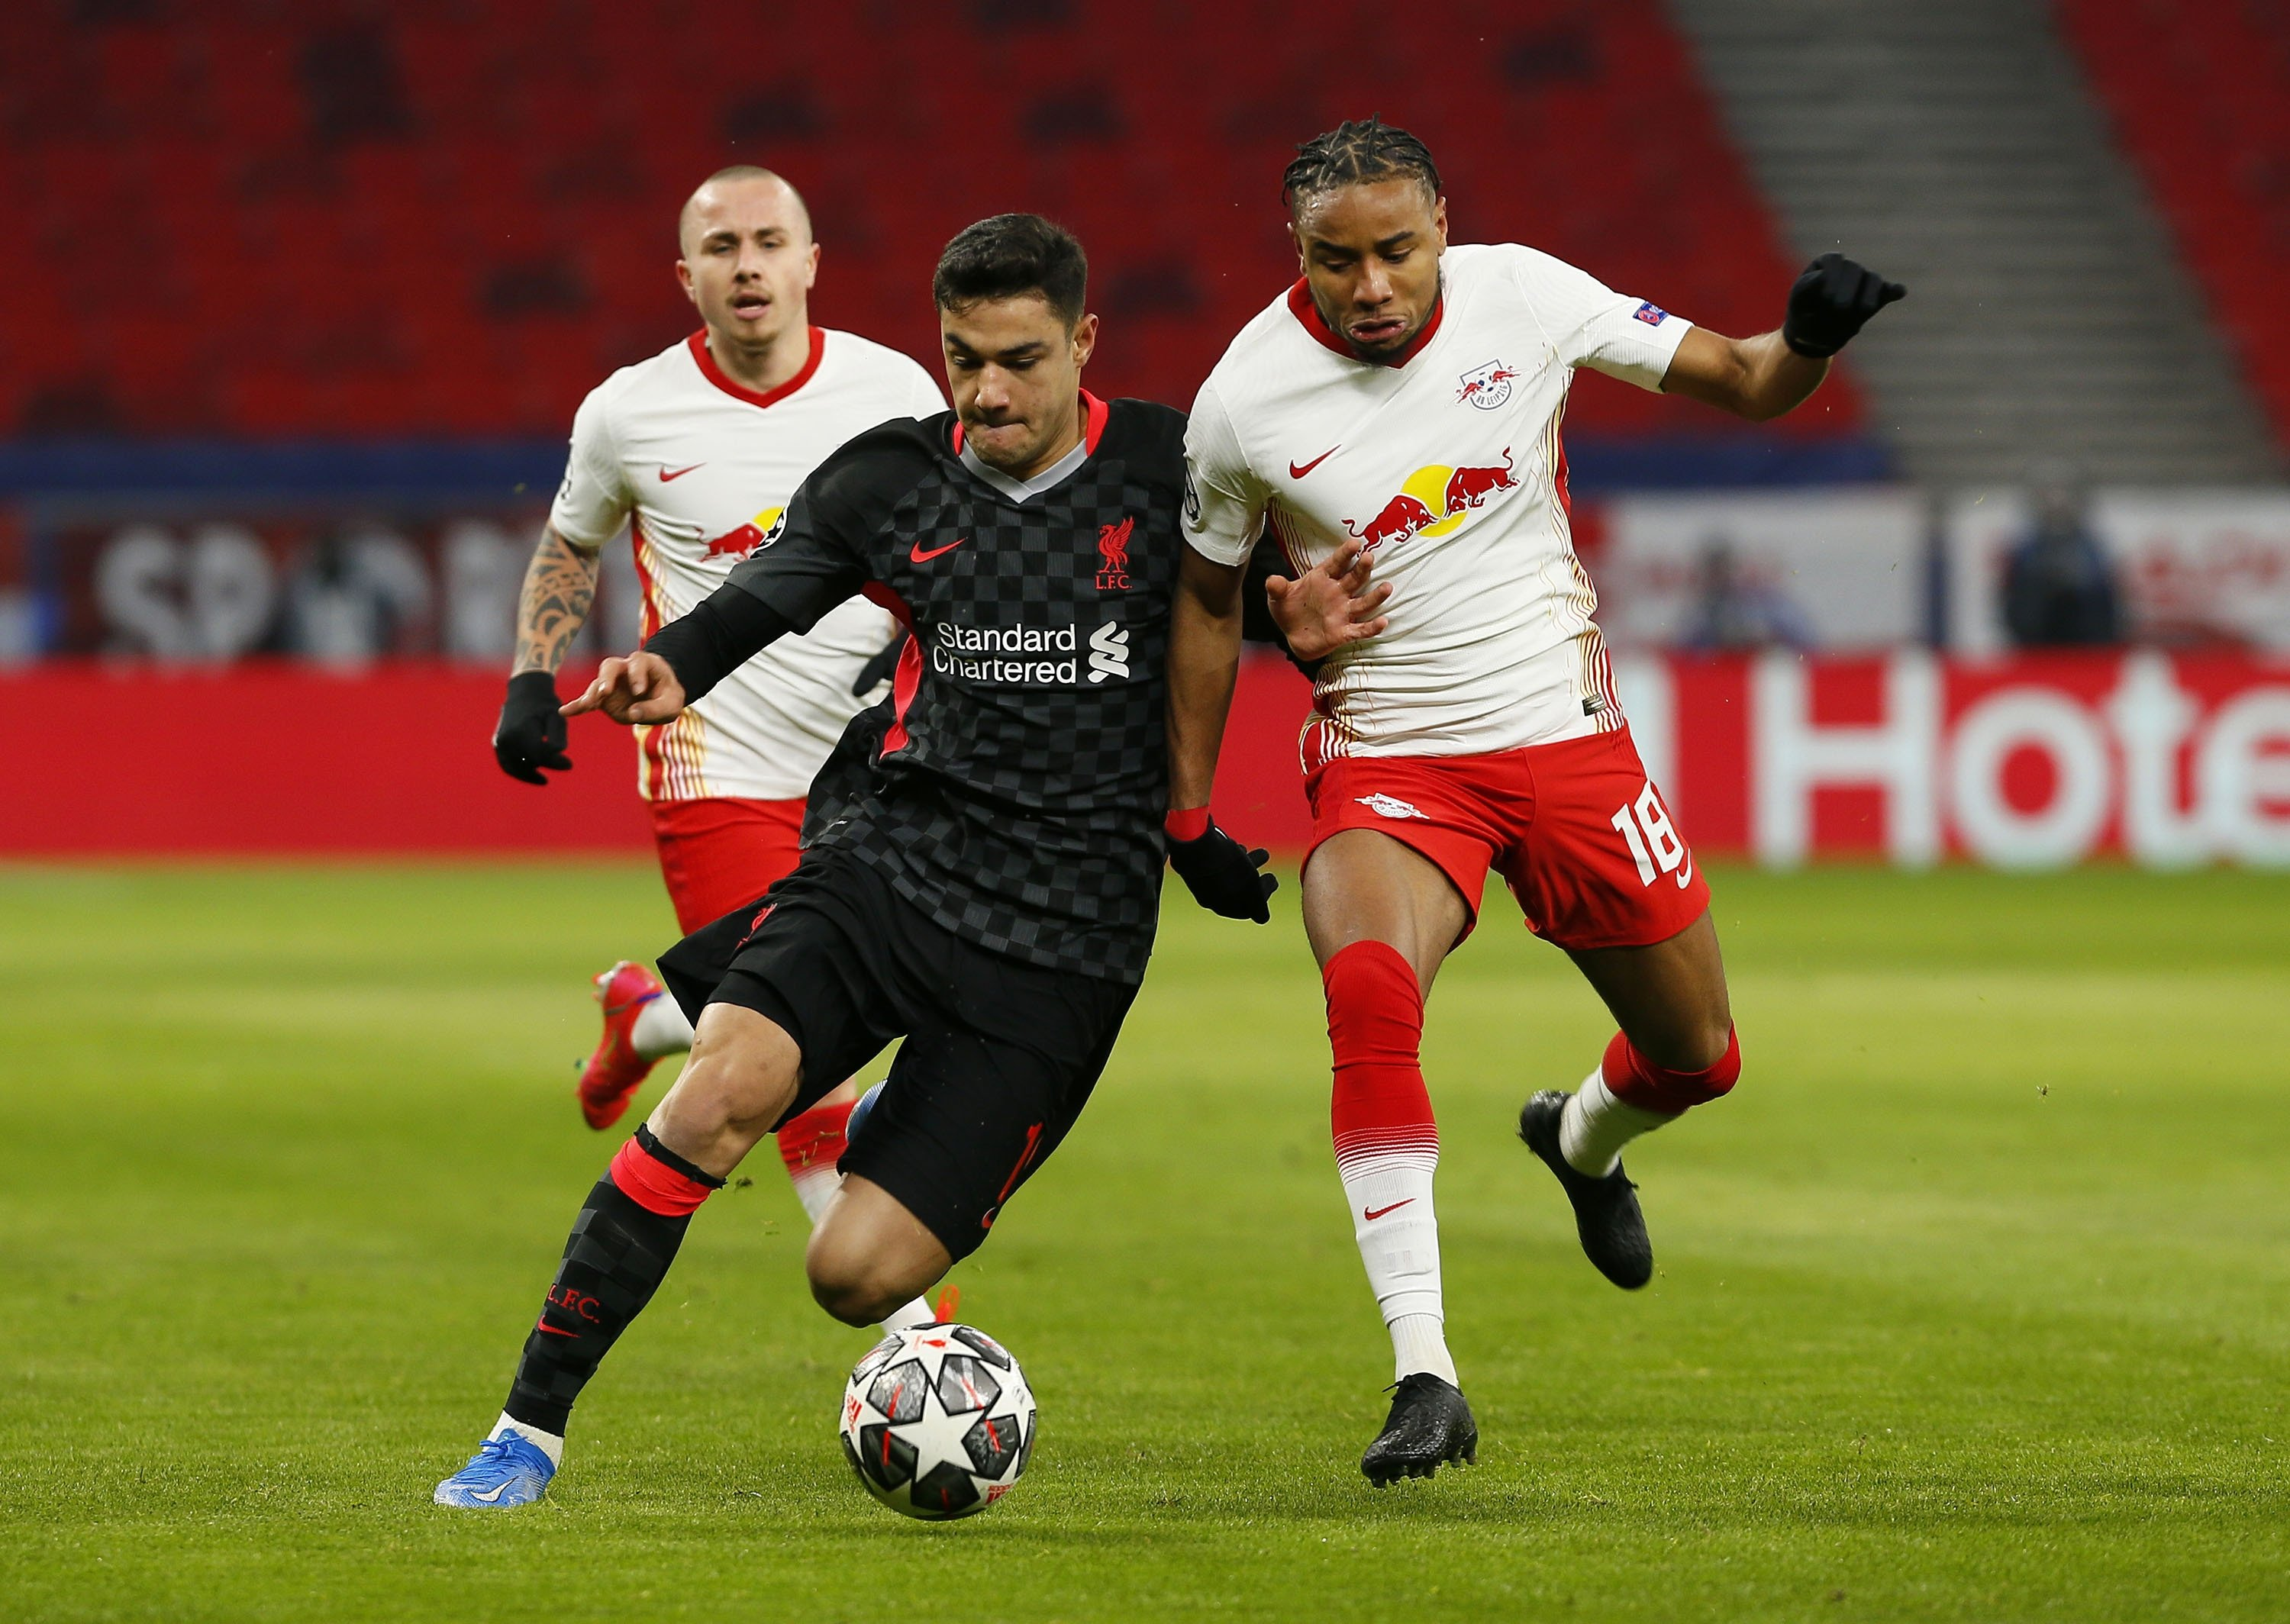 Liverpool's Ozan Kabak (L) and RB Leipzig's Christopher Nkunku (R) battle for the ball during the UEFA Champions League round of 16 match at The Puskas Arena, Budapest, Feb. 16, 2021. (Reuters Photo)